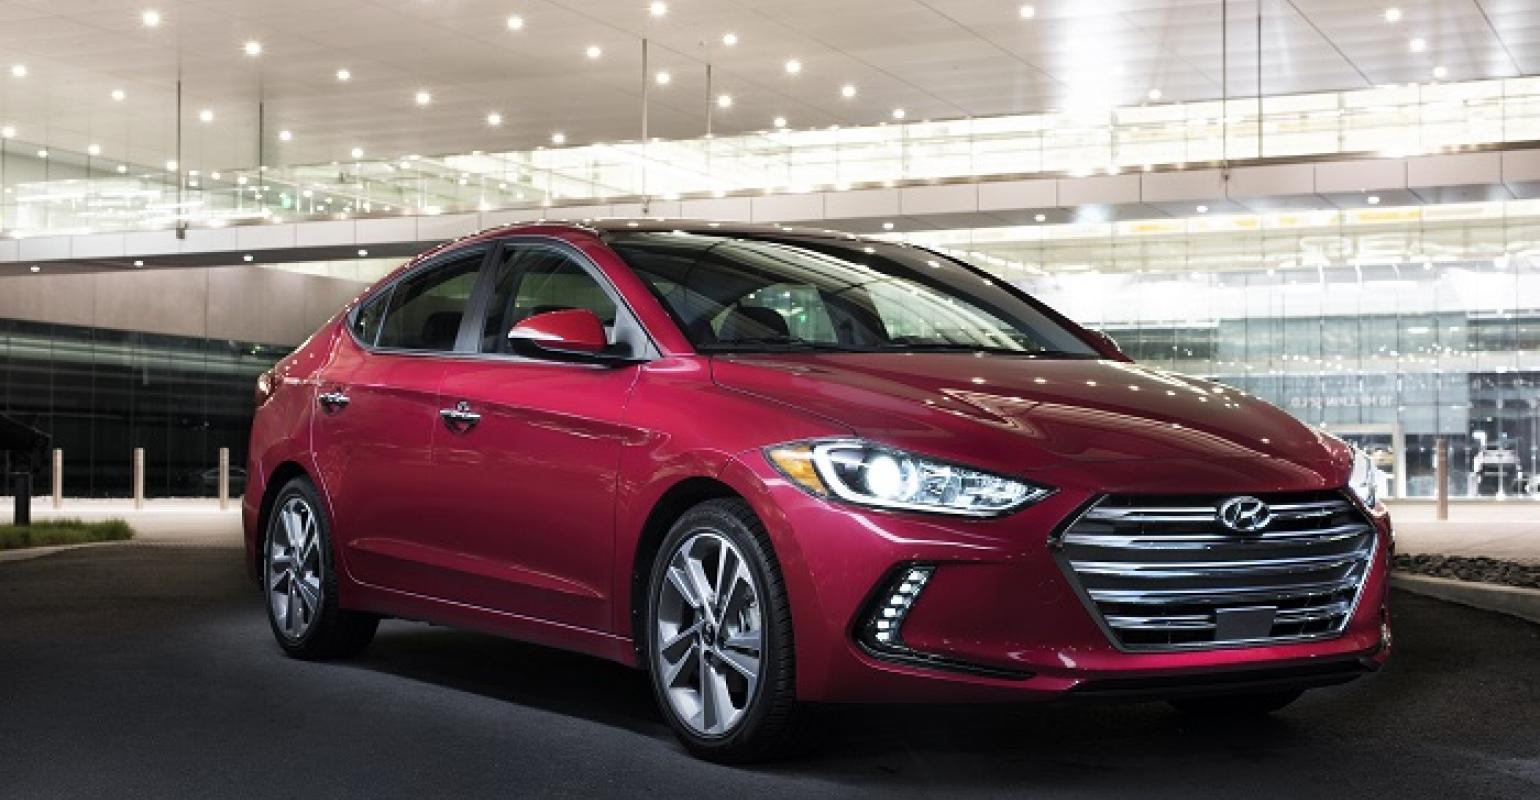 rsquo17 Elantra sedan SE Limited grades on sale in US in January. '